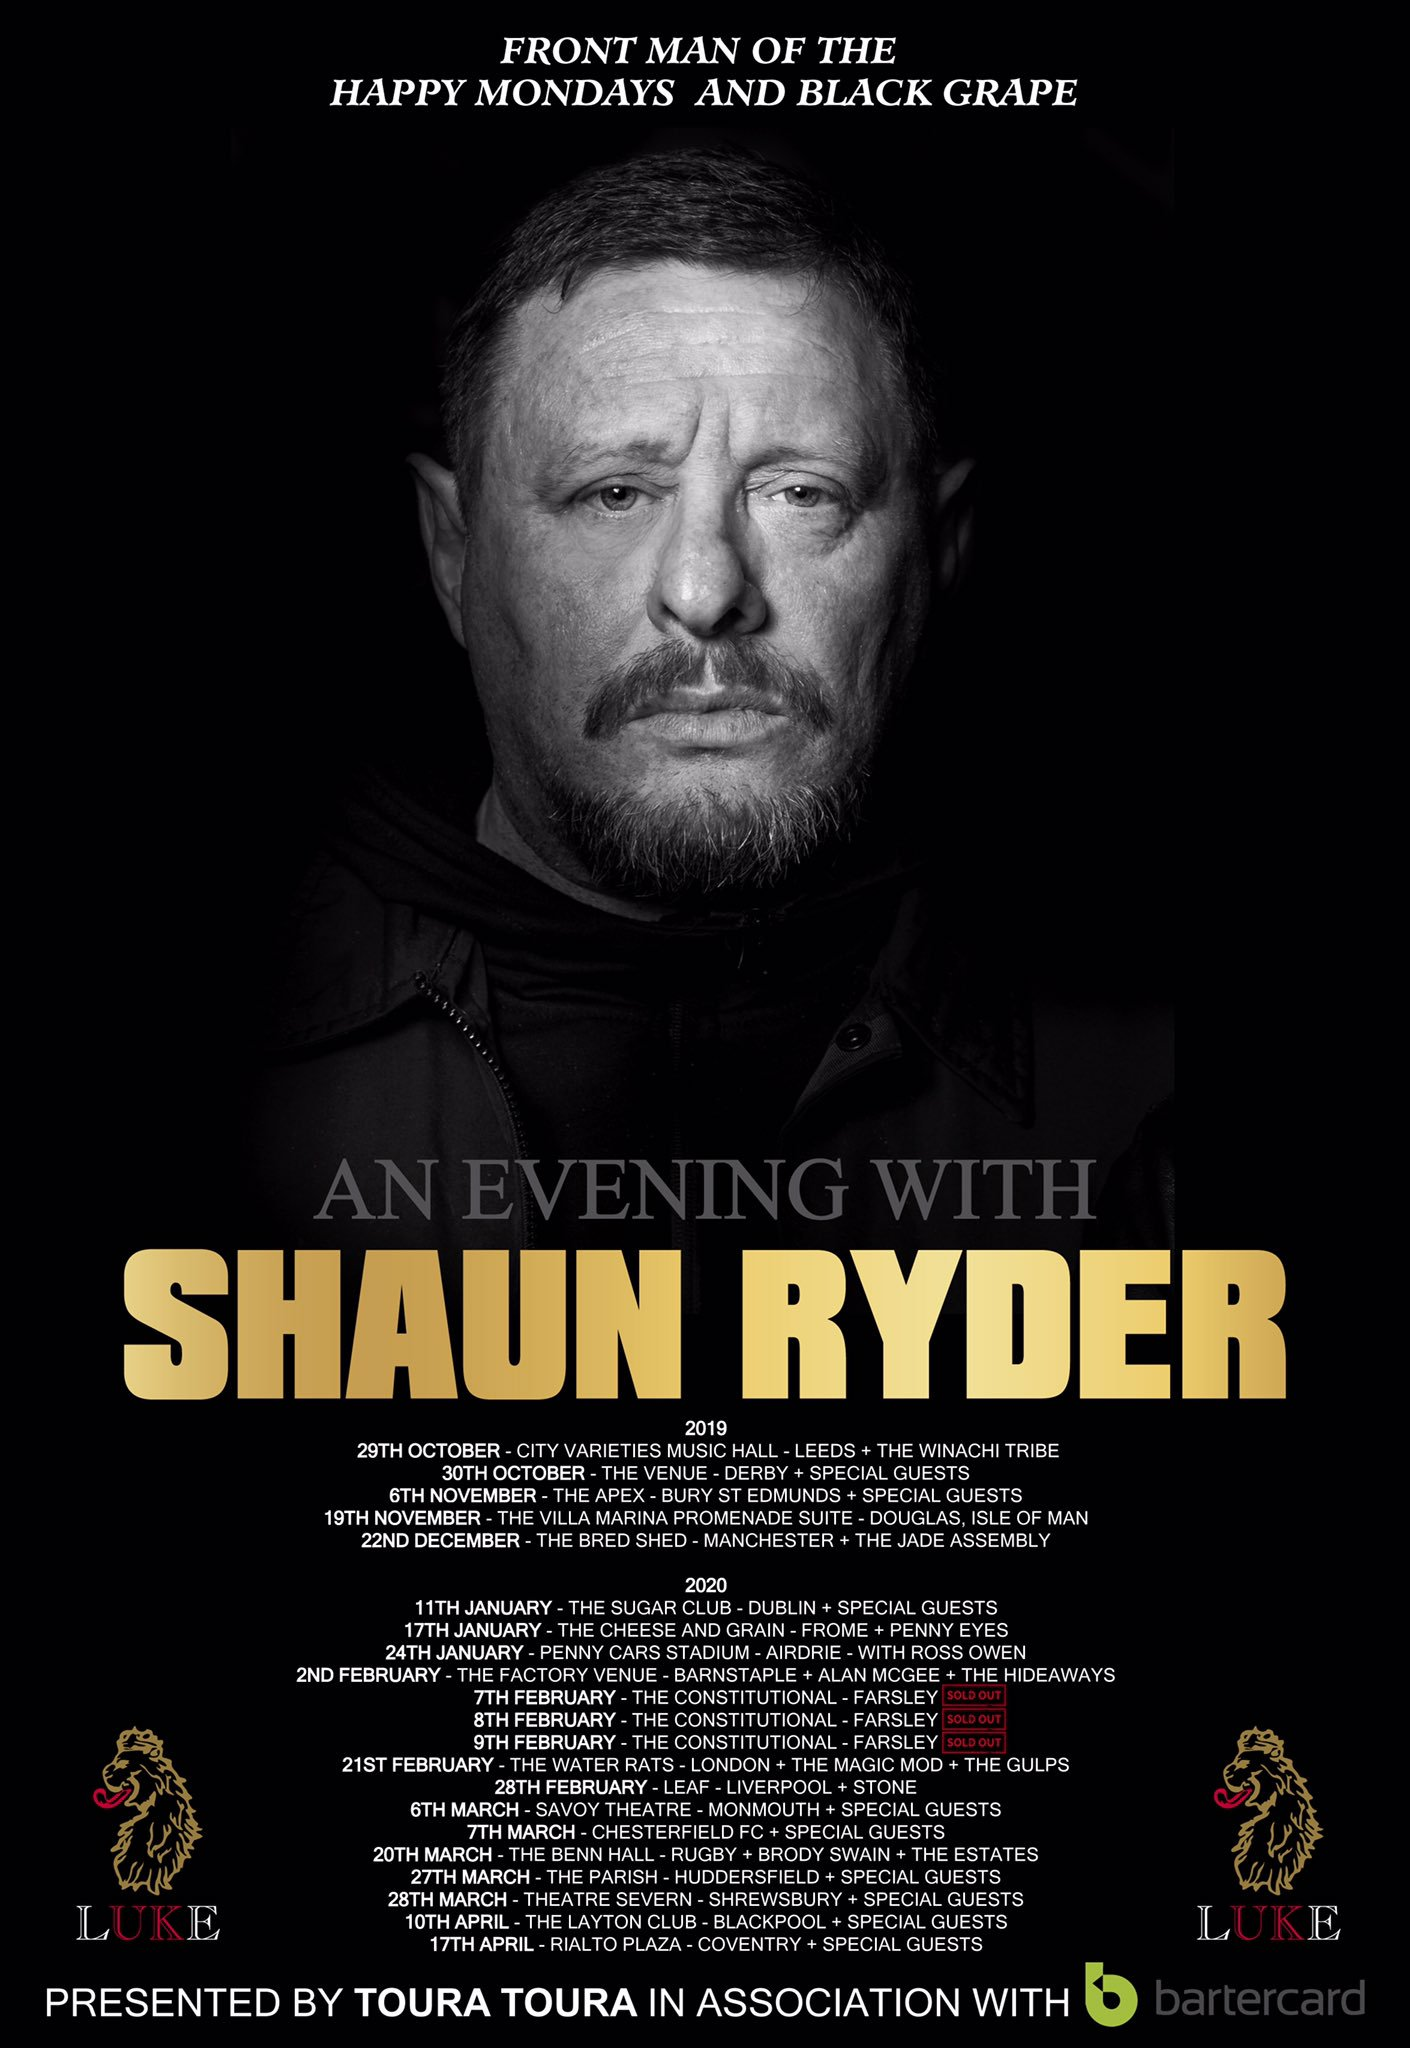 Evenings with Shaun Ryder